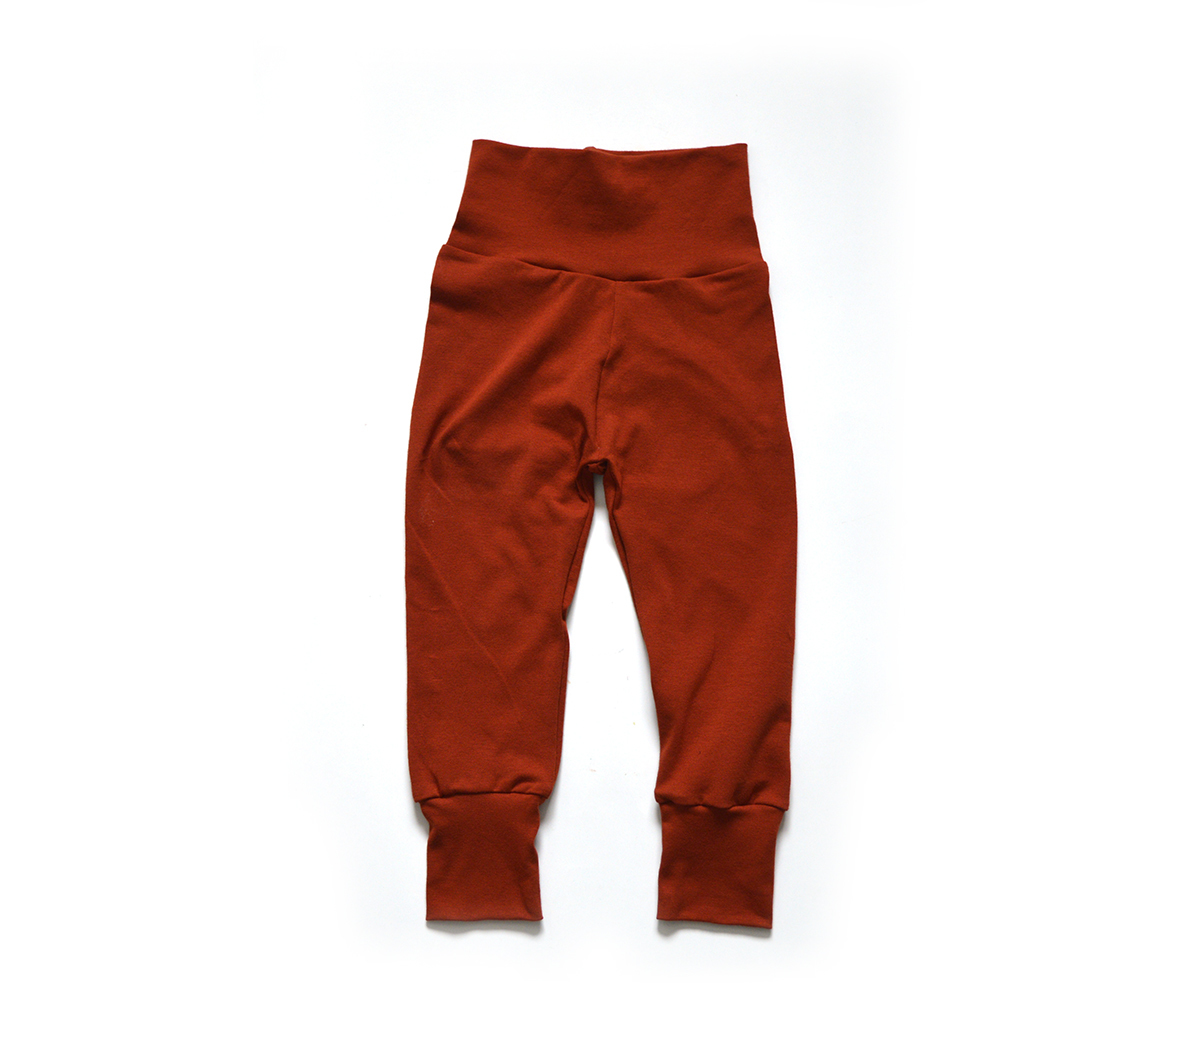 Little Sprout Pants™  Rust - Bamboo 00785